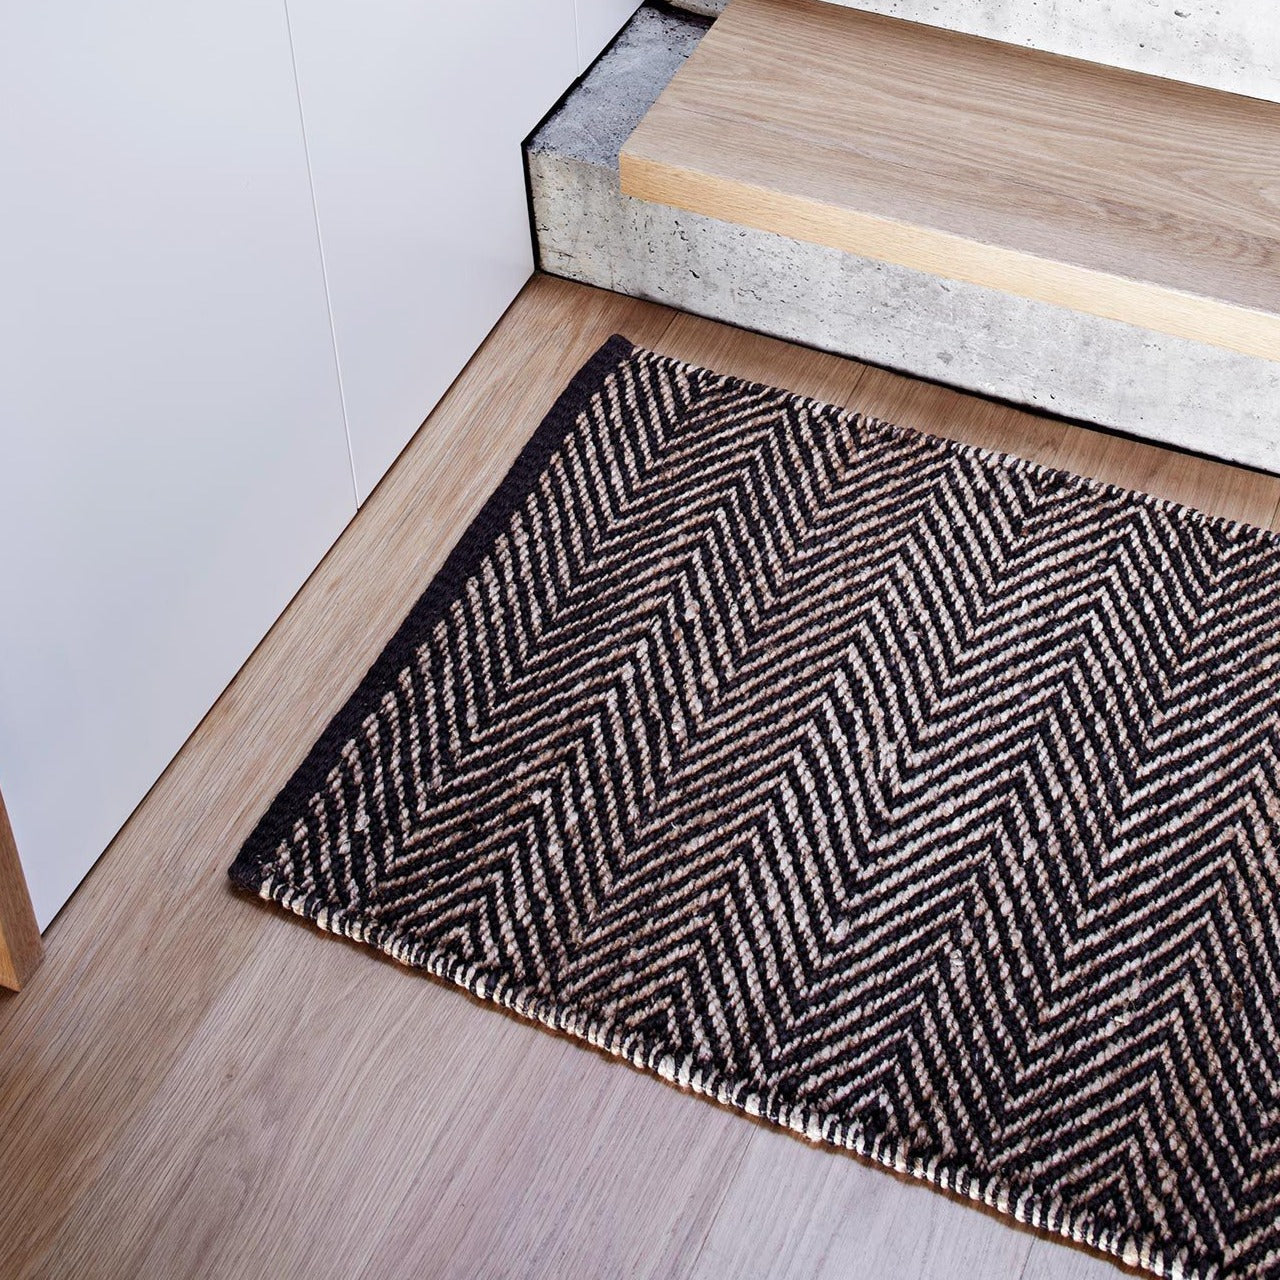 Serengeti Weave Entrance Mat- Charcoal & Natural 0.6 x 1m